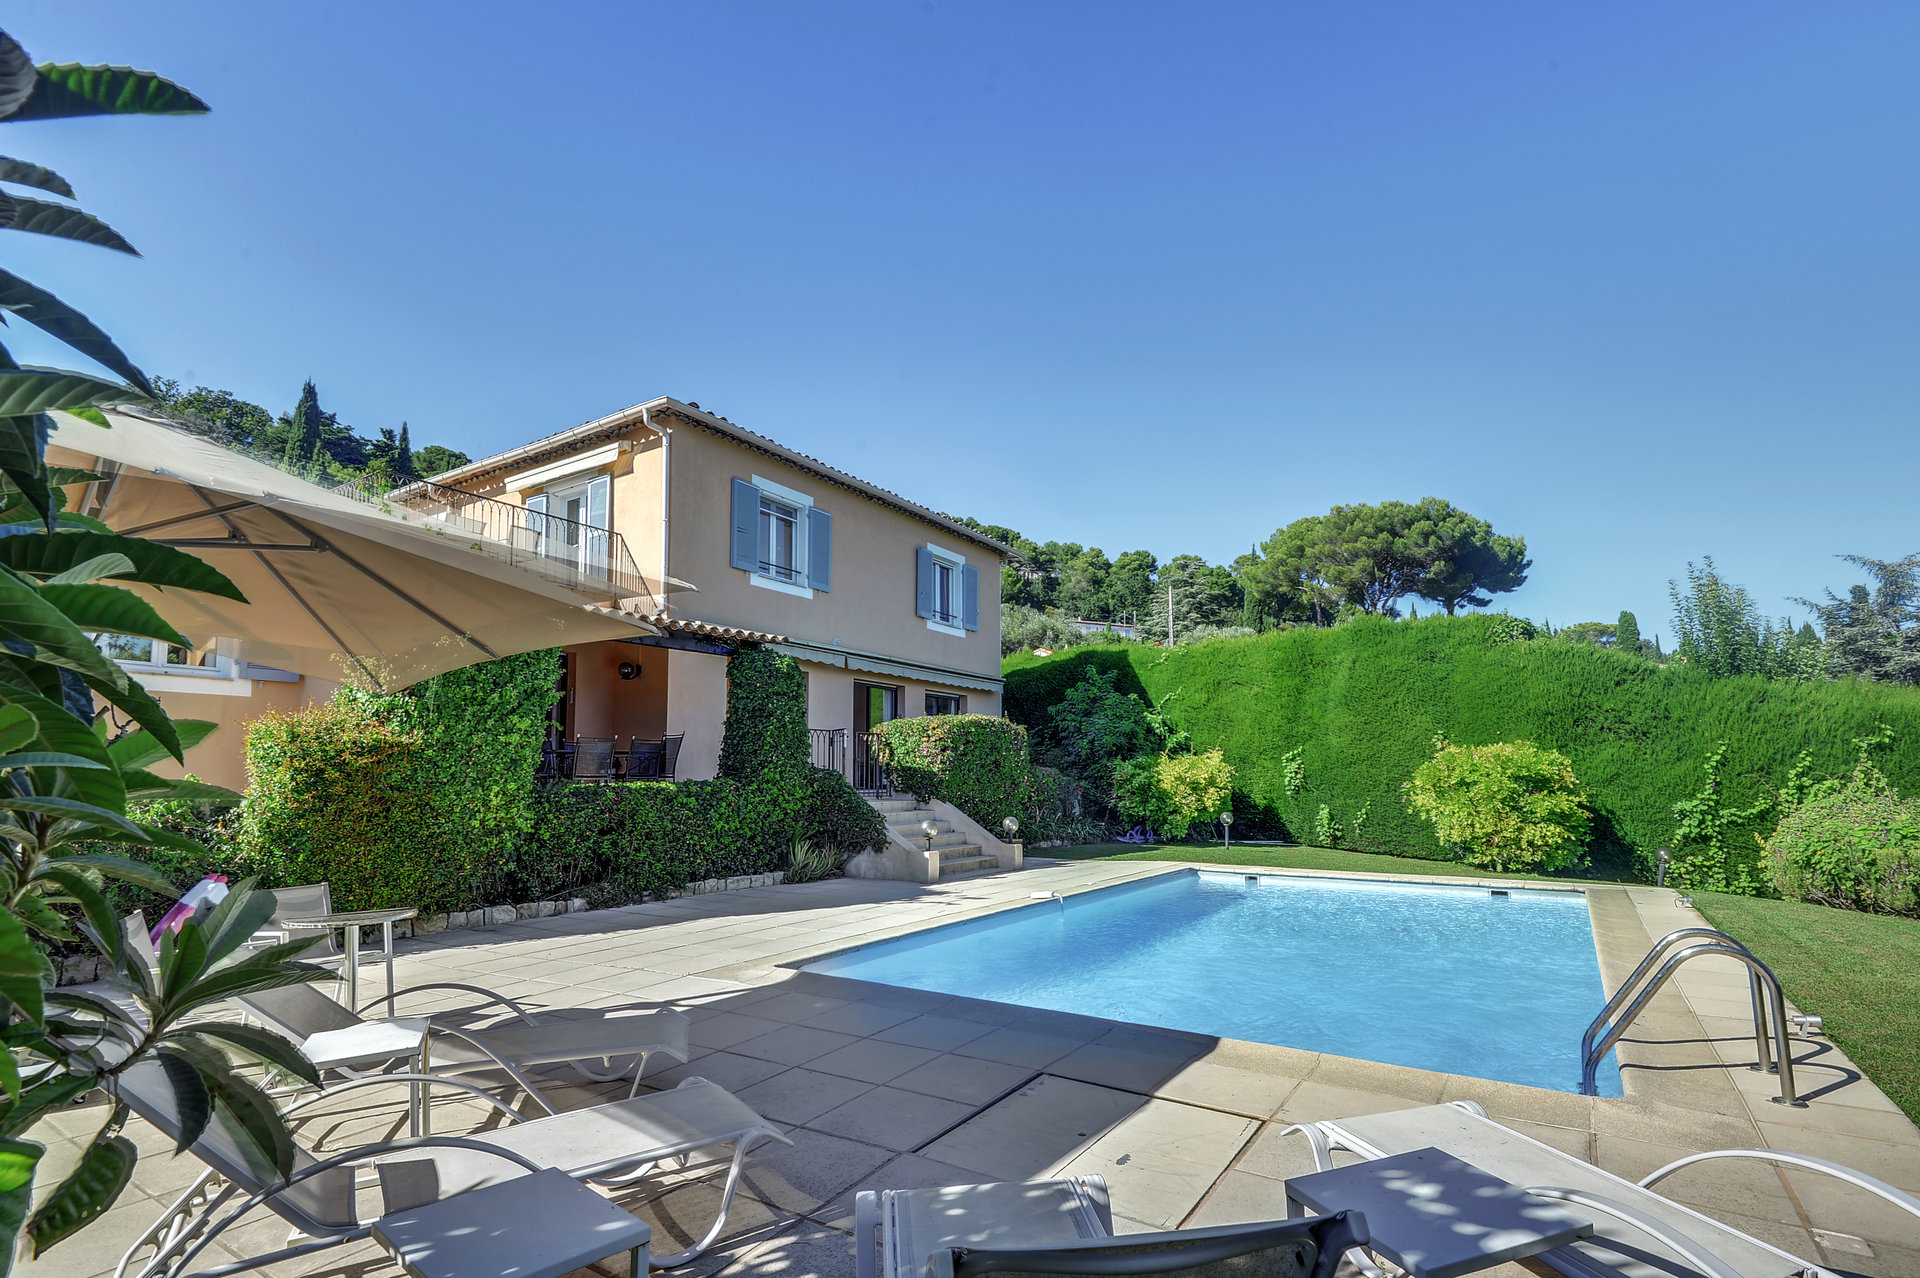 MOUGINS - Charming house with lovely sea view - SOLE AGENT.